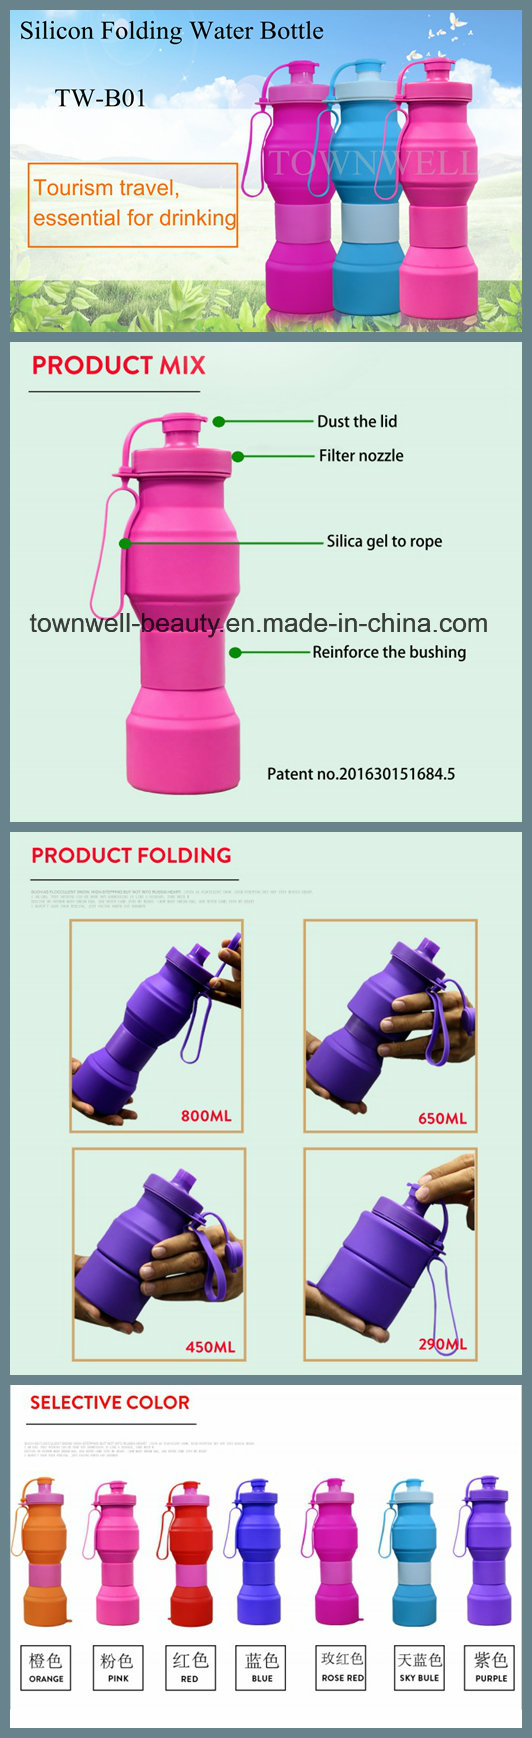 4 Capacities in 1 Silicone Foldable Water Bottle